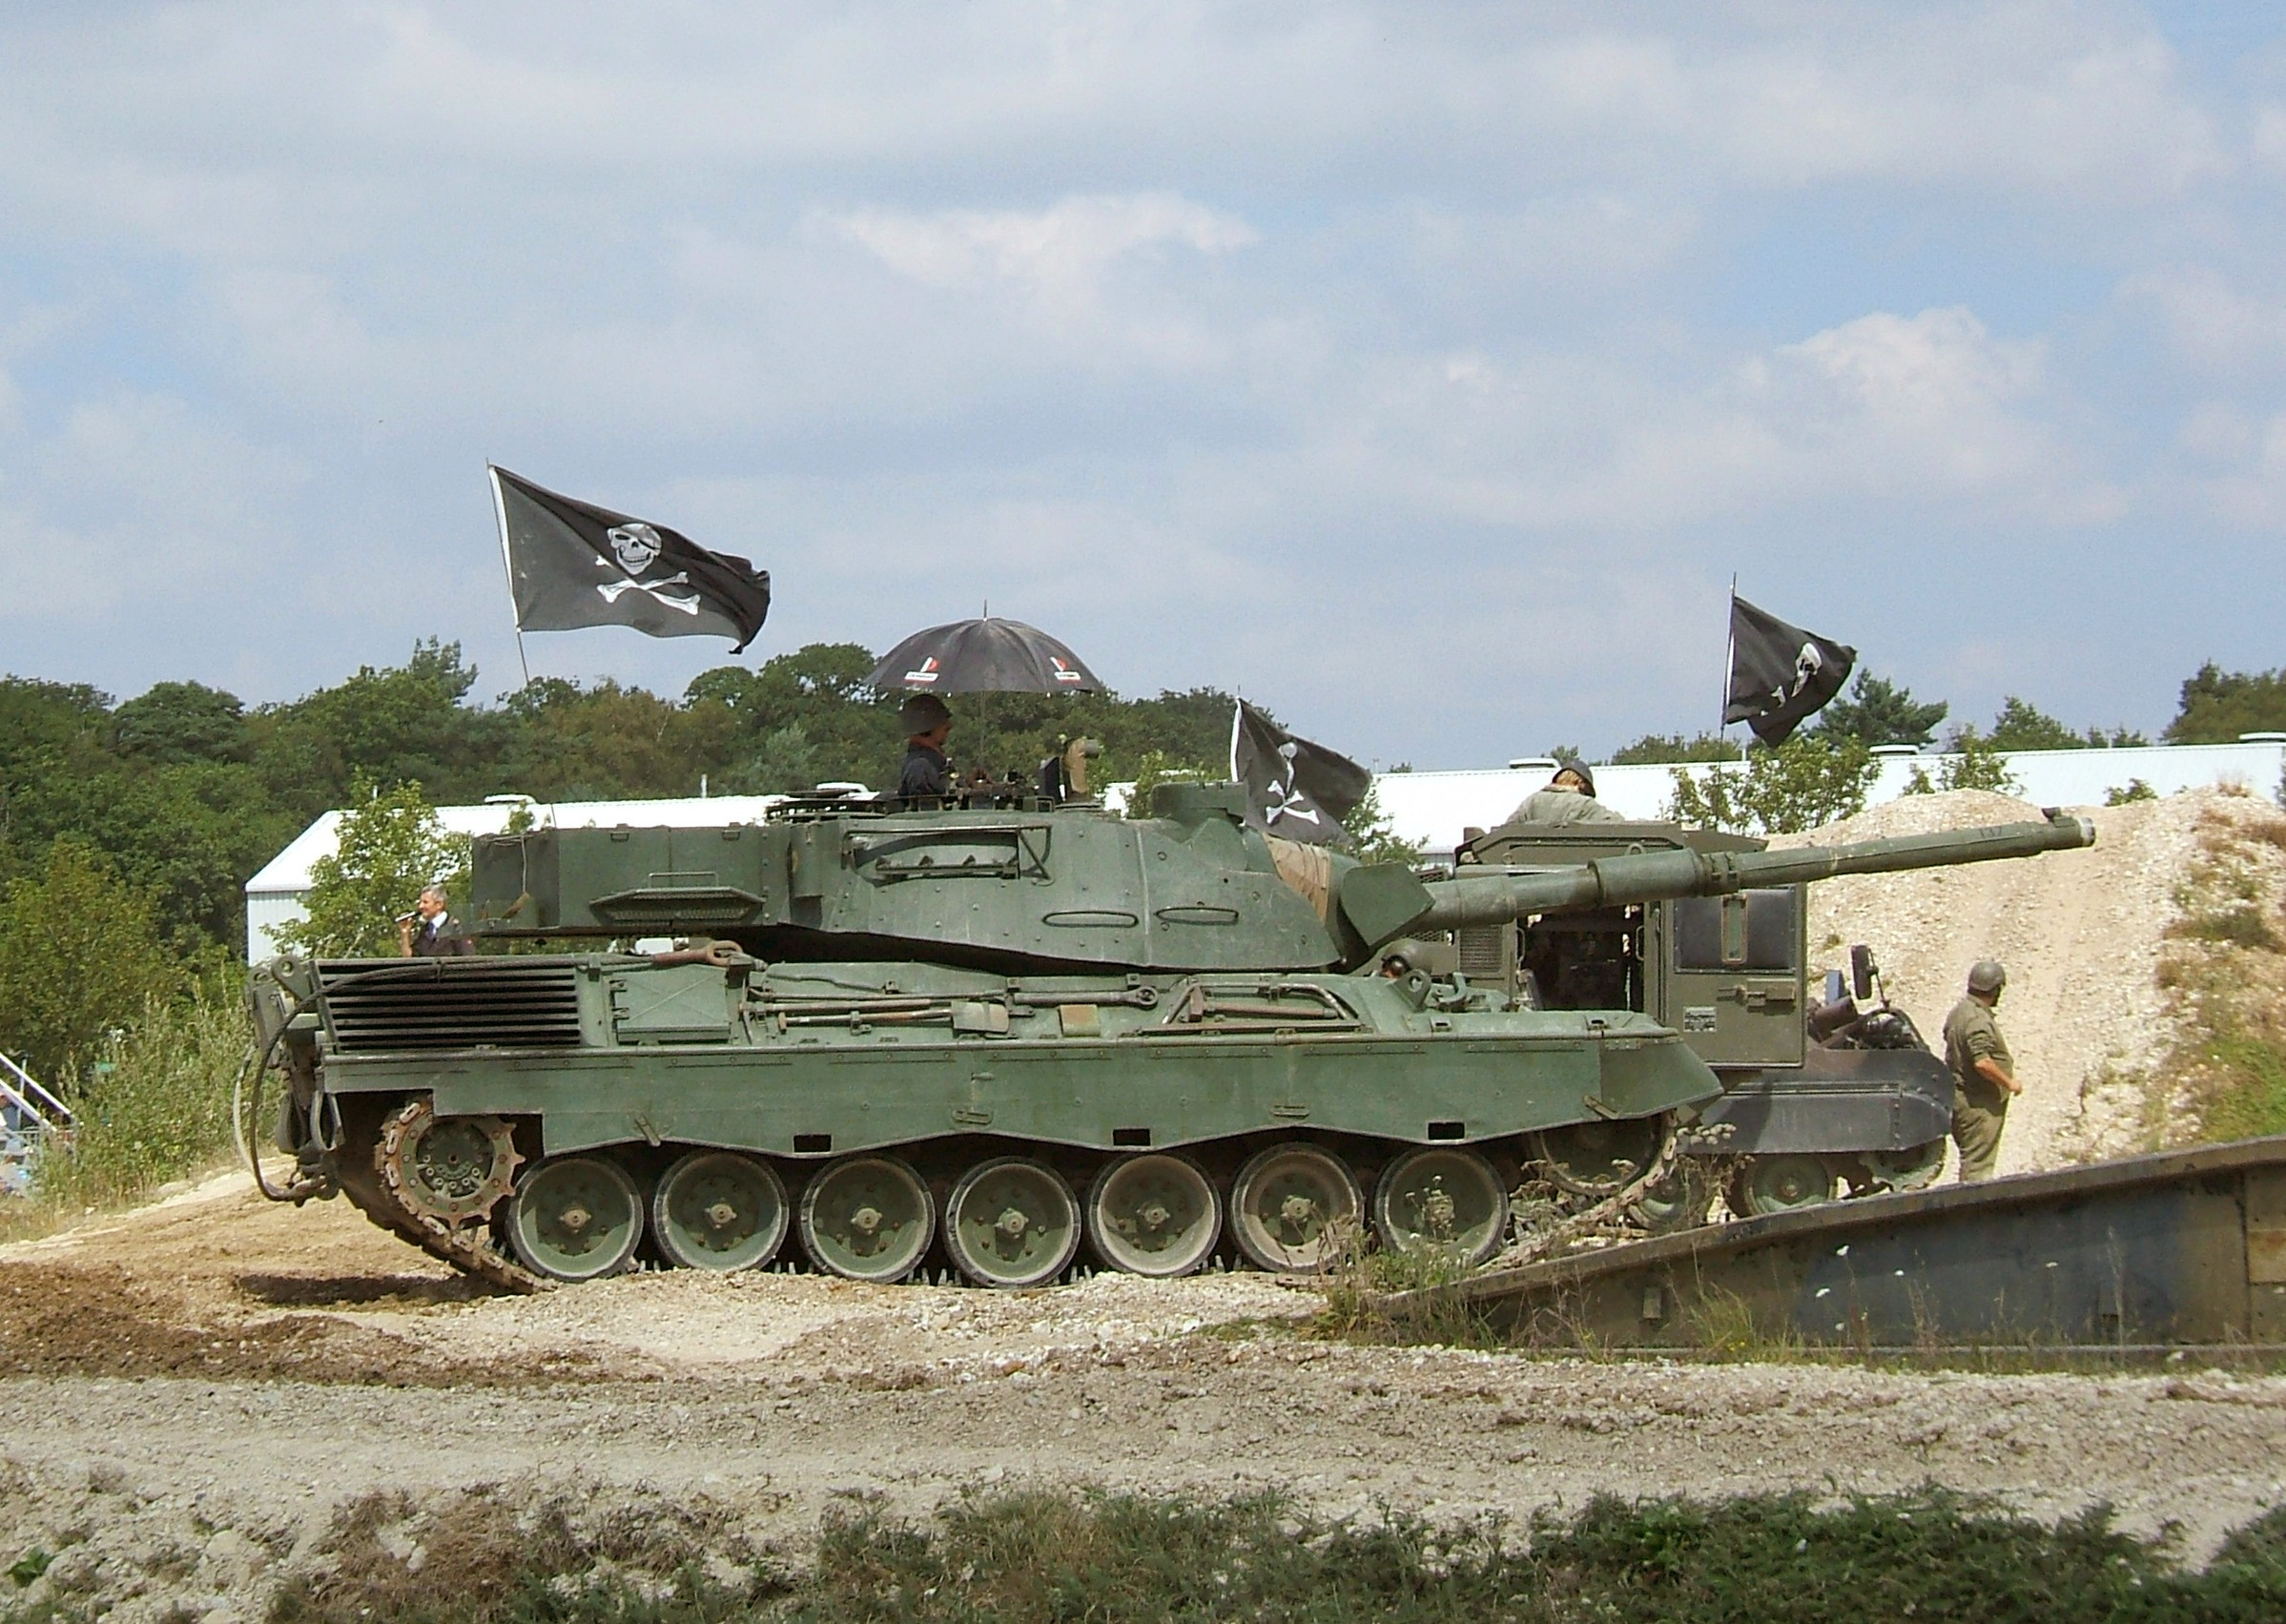 File:Bovington Leopard C2-1.jpg - Wikimedia Commons Army Helicopters In Action